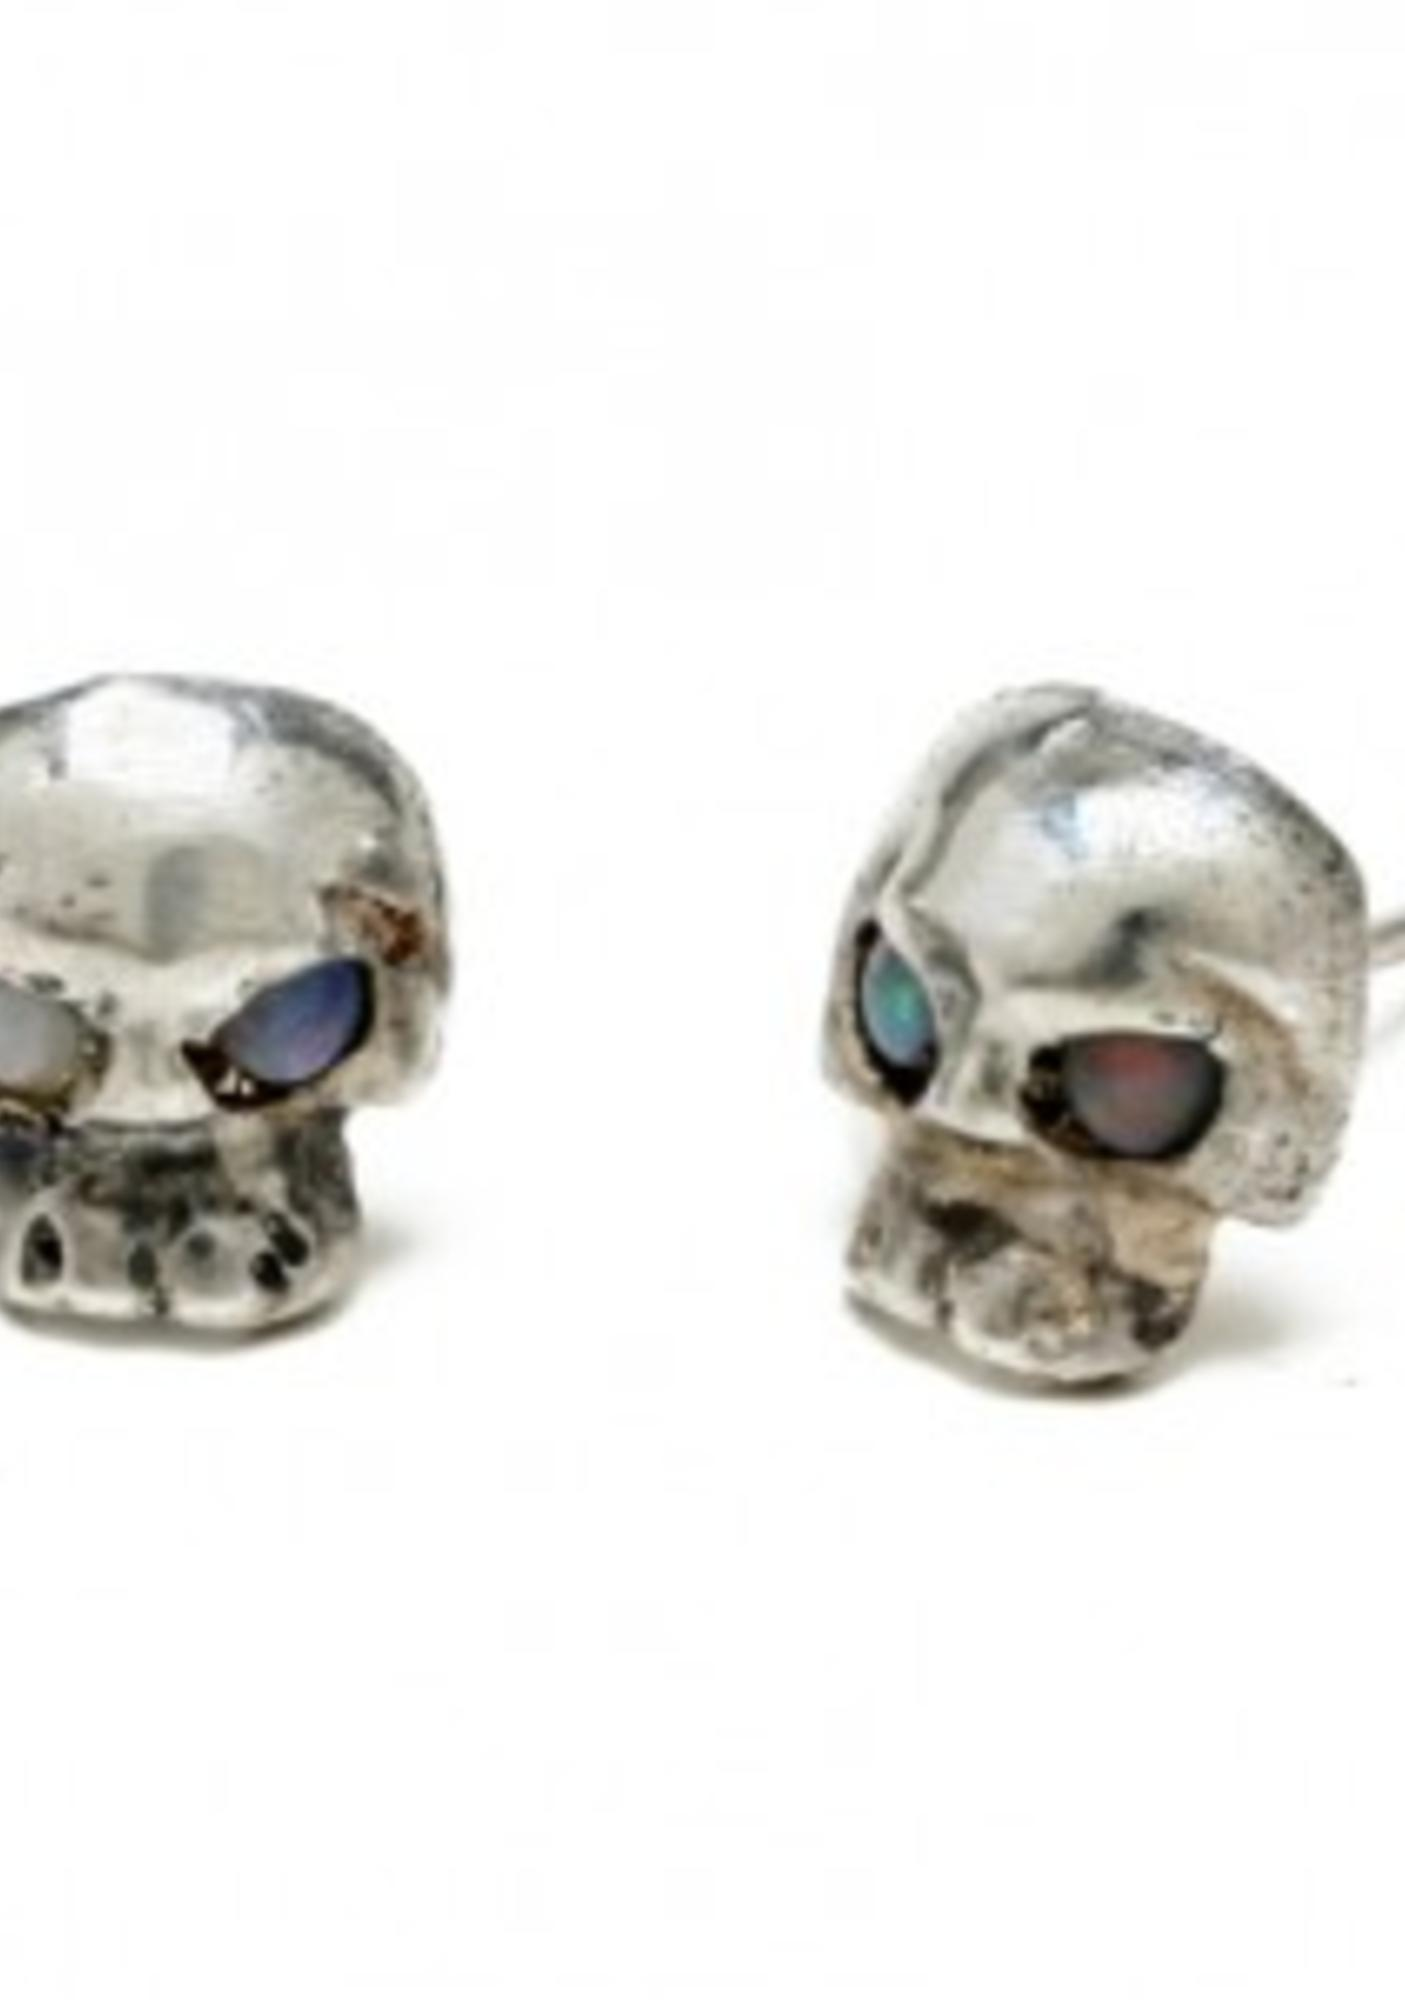 Opal Eyes Mini Skull Earrings